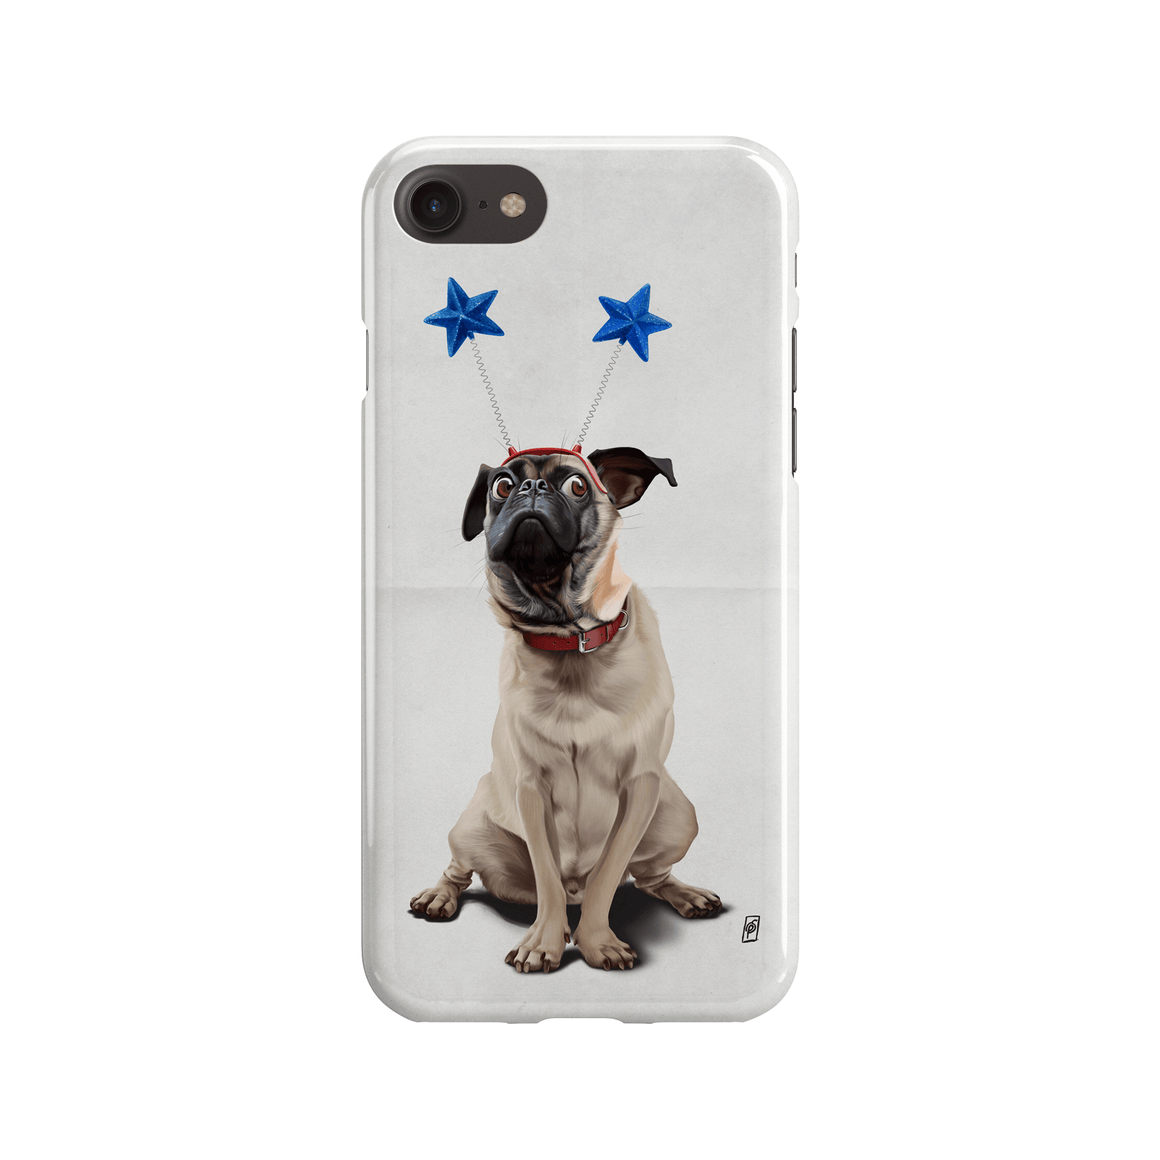 A Pug's Life Animal Behaviour iPhone / Galaxy Premium Phone Case